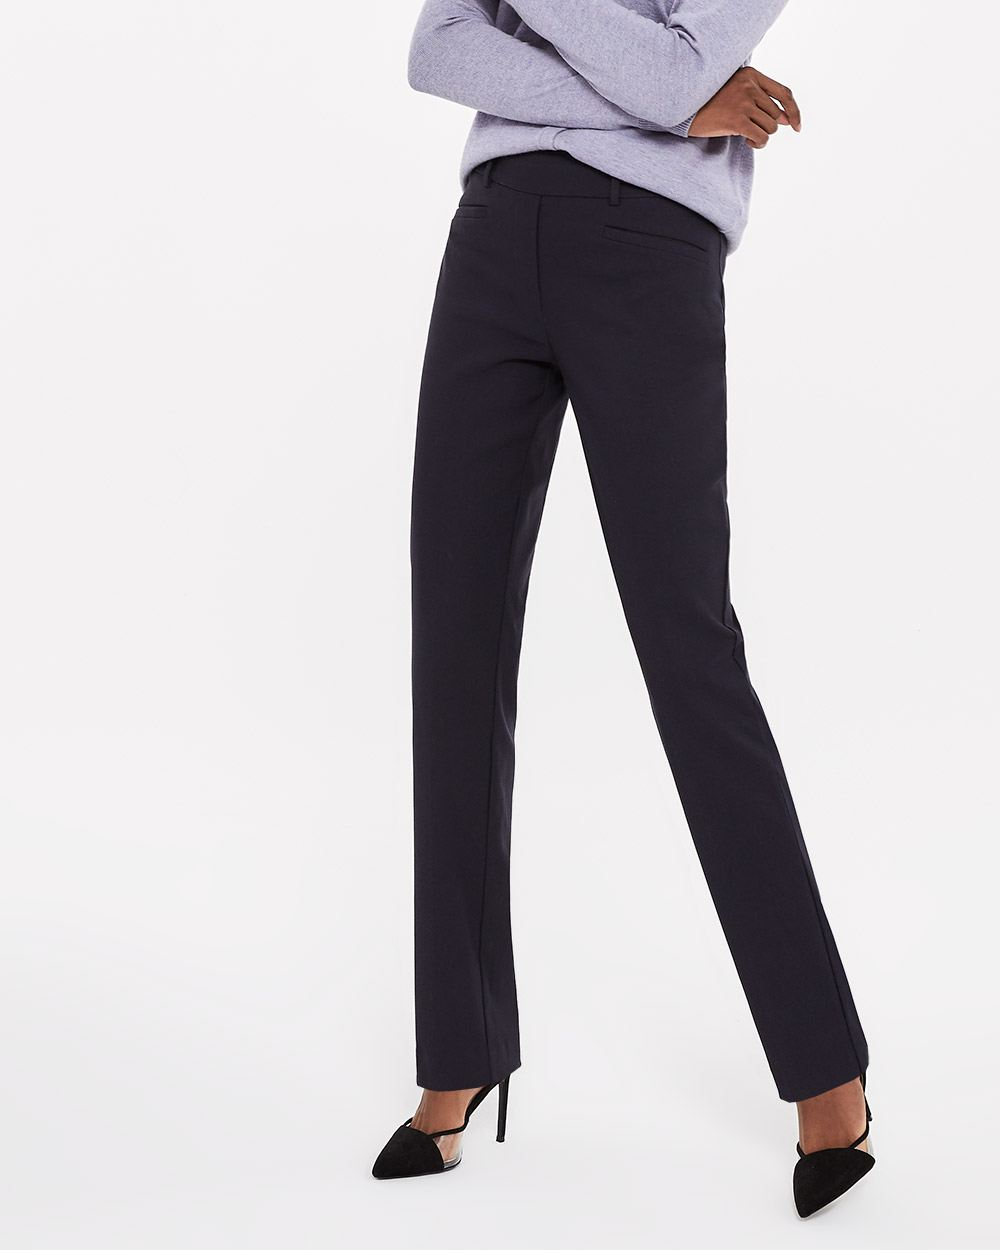 The Petite Iconic Straight Leg Pants